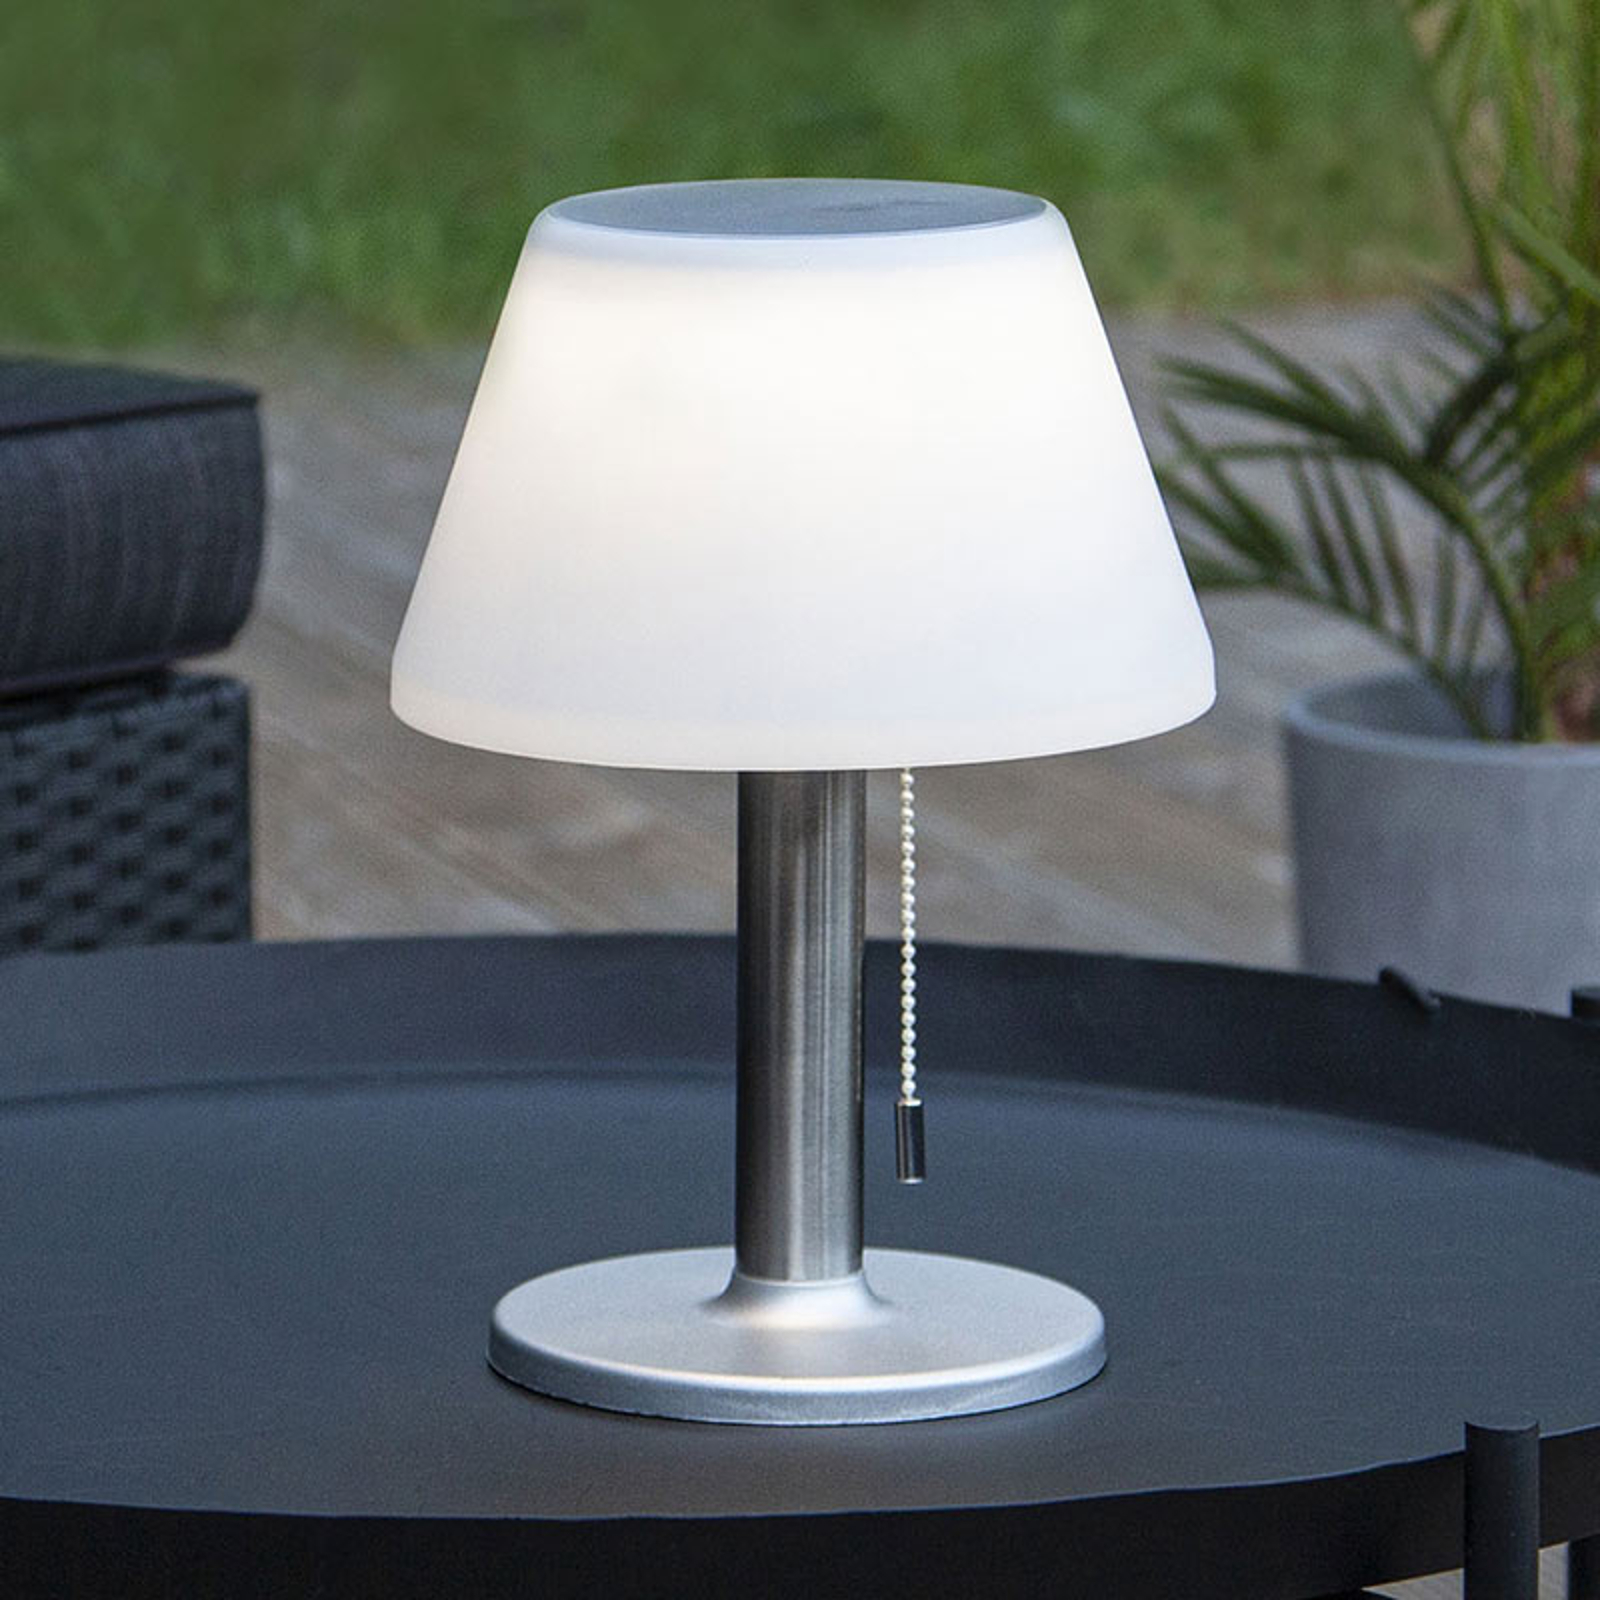 Solia LED solar table lamp with pull switch_1523833_1